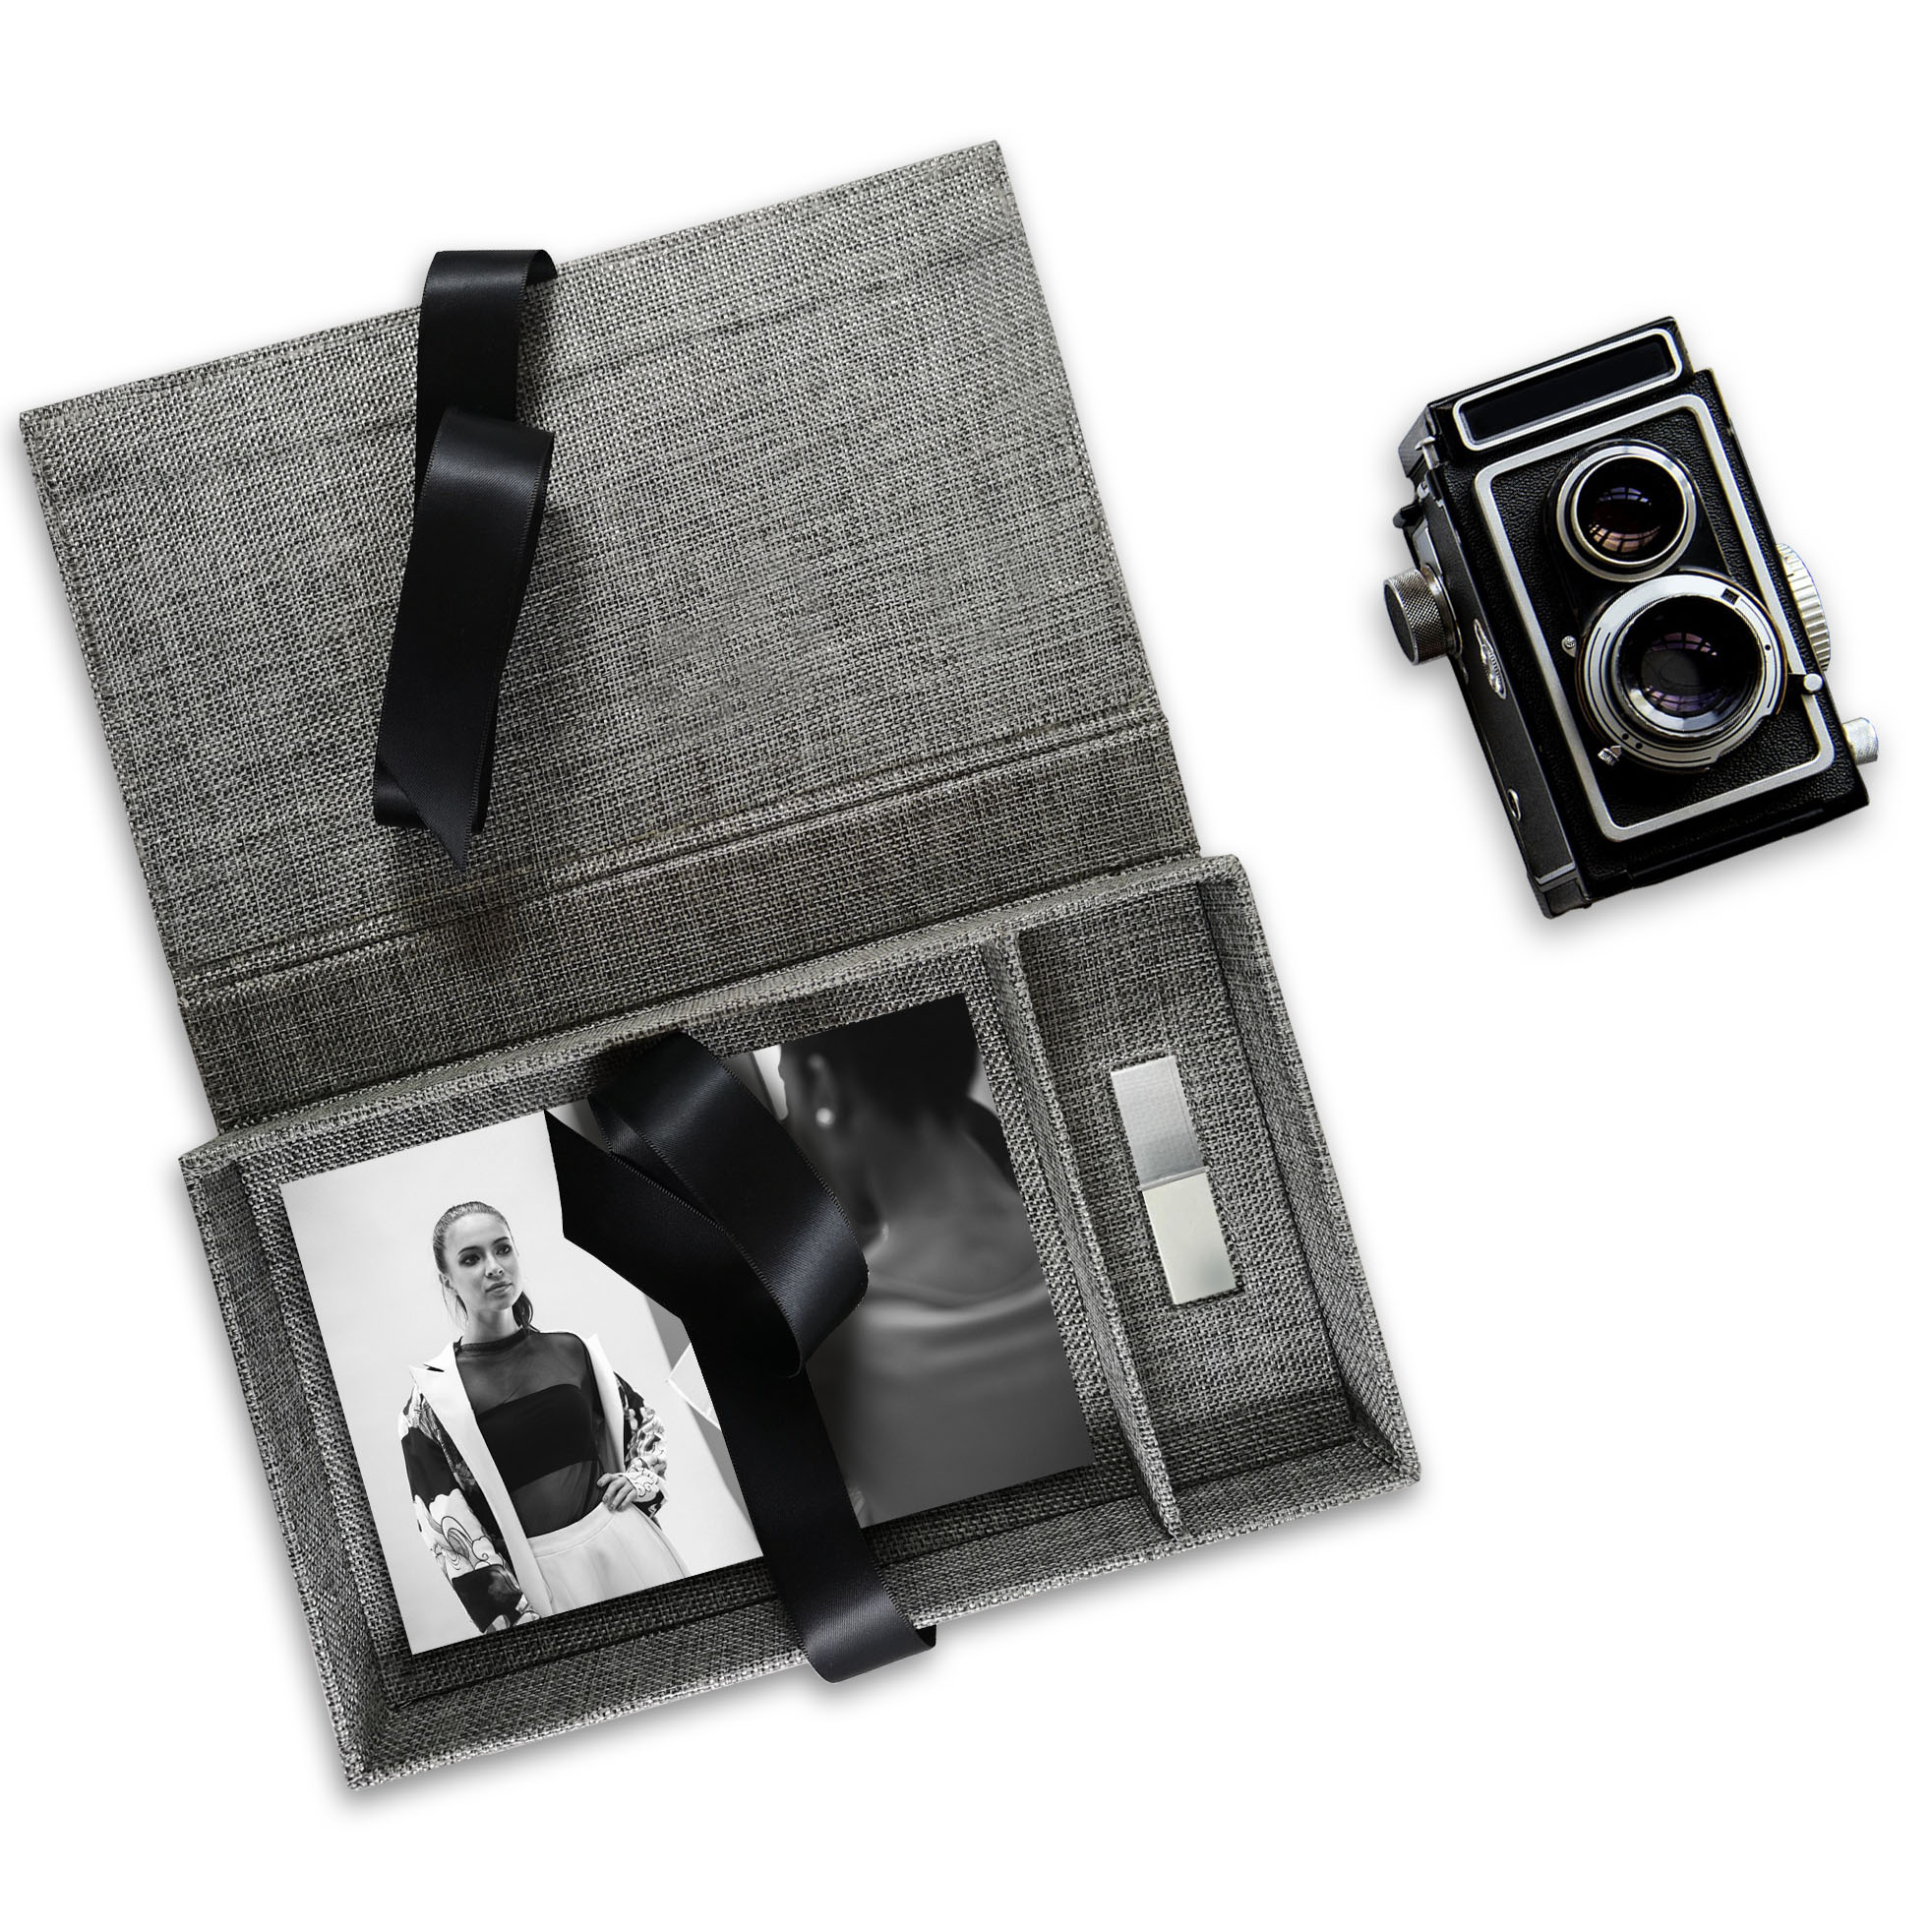 Charcoal linen USB photo box for photographer out now!